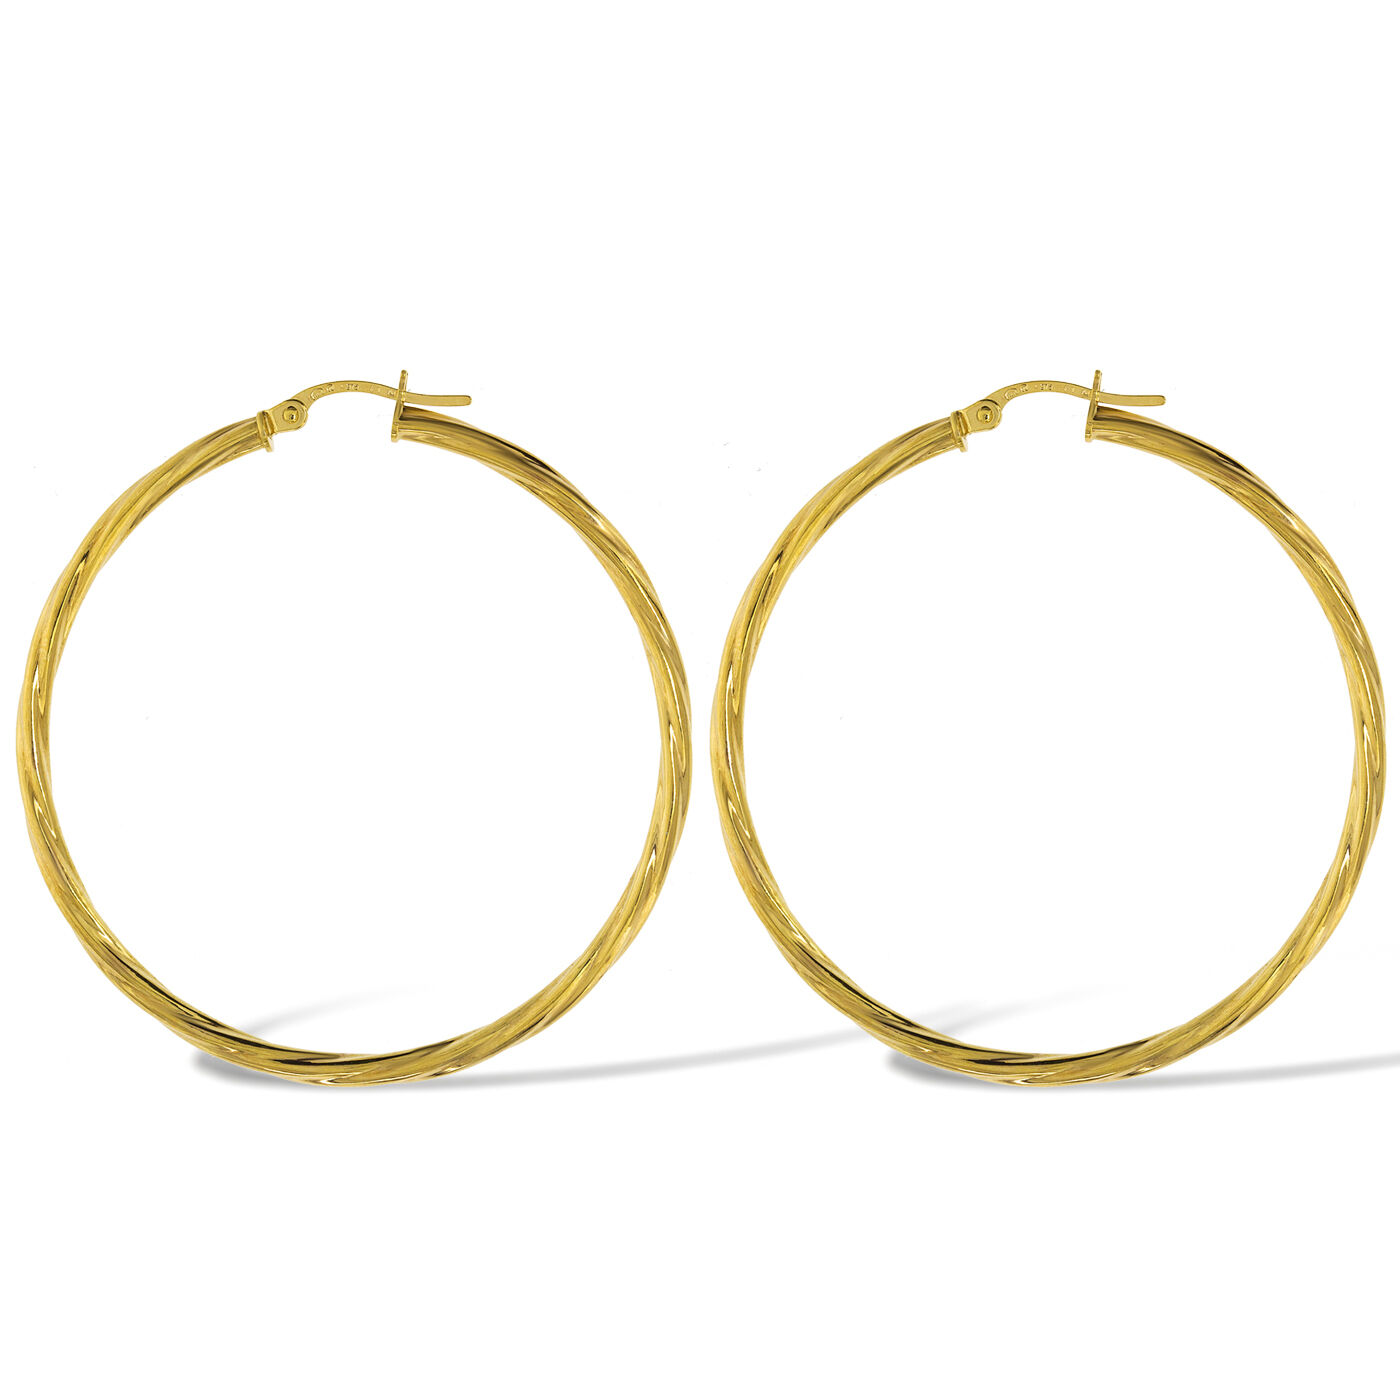 c20a422fd0809 TWISTED CABLE 45X2MM ROUND gold 375 TUBE 9CT BOX EARRINGS SLEEPER ...